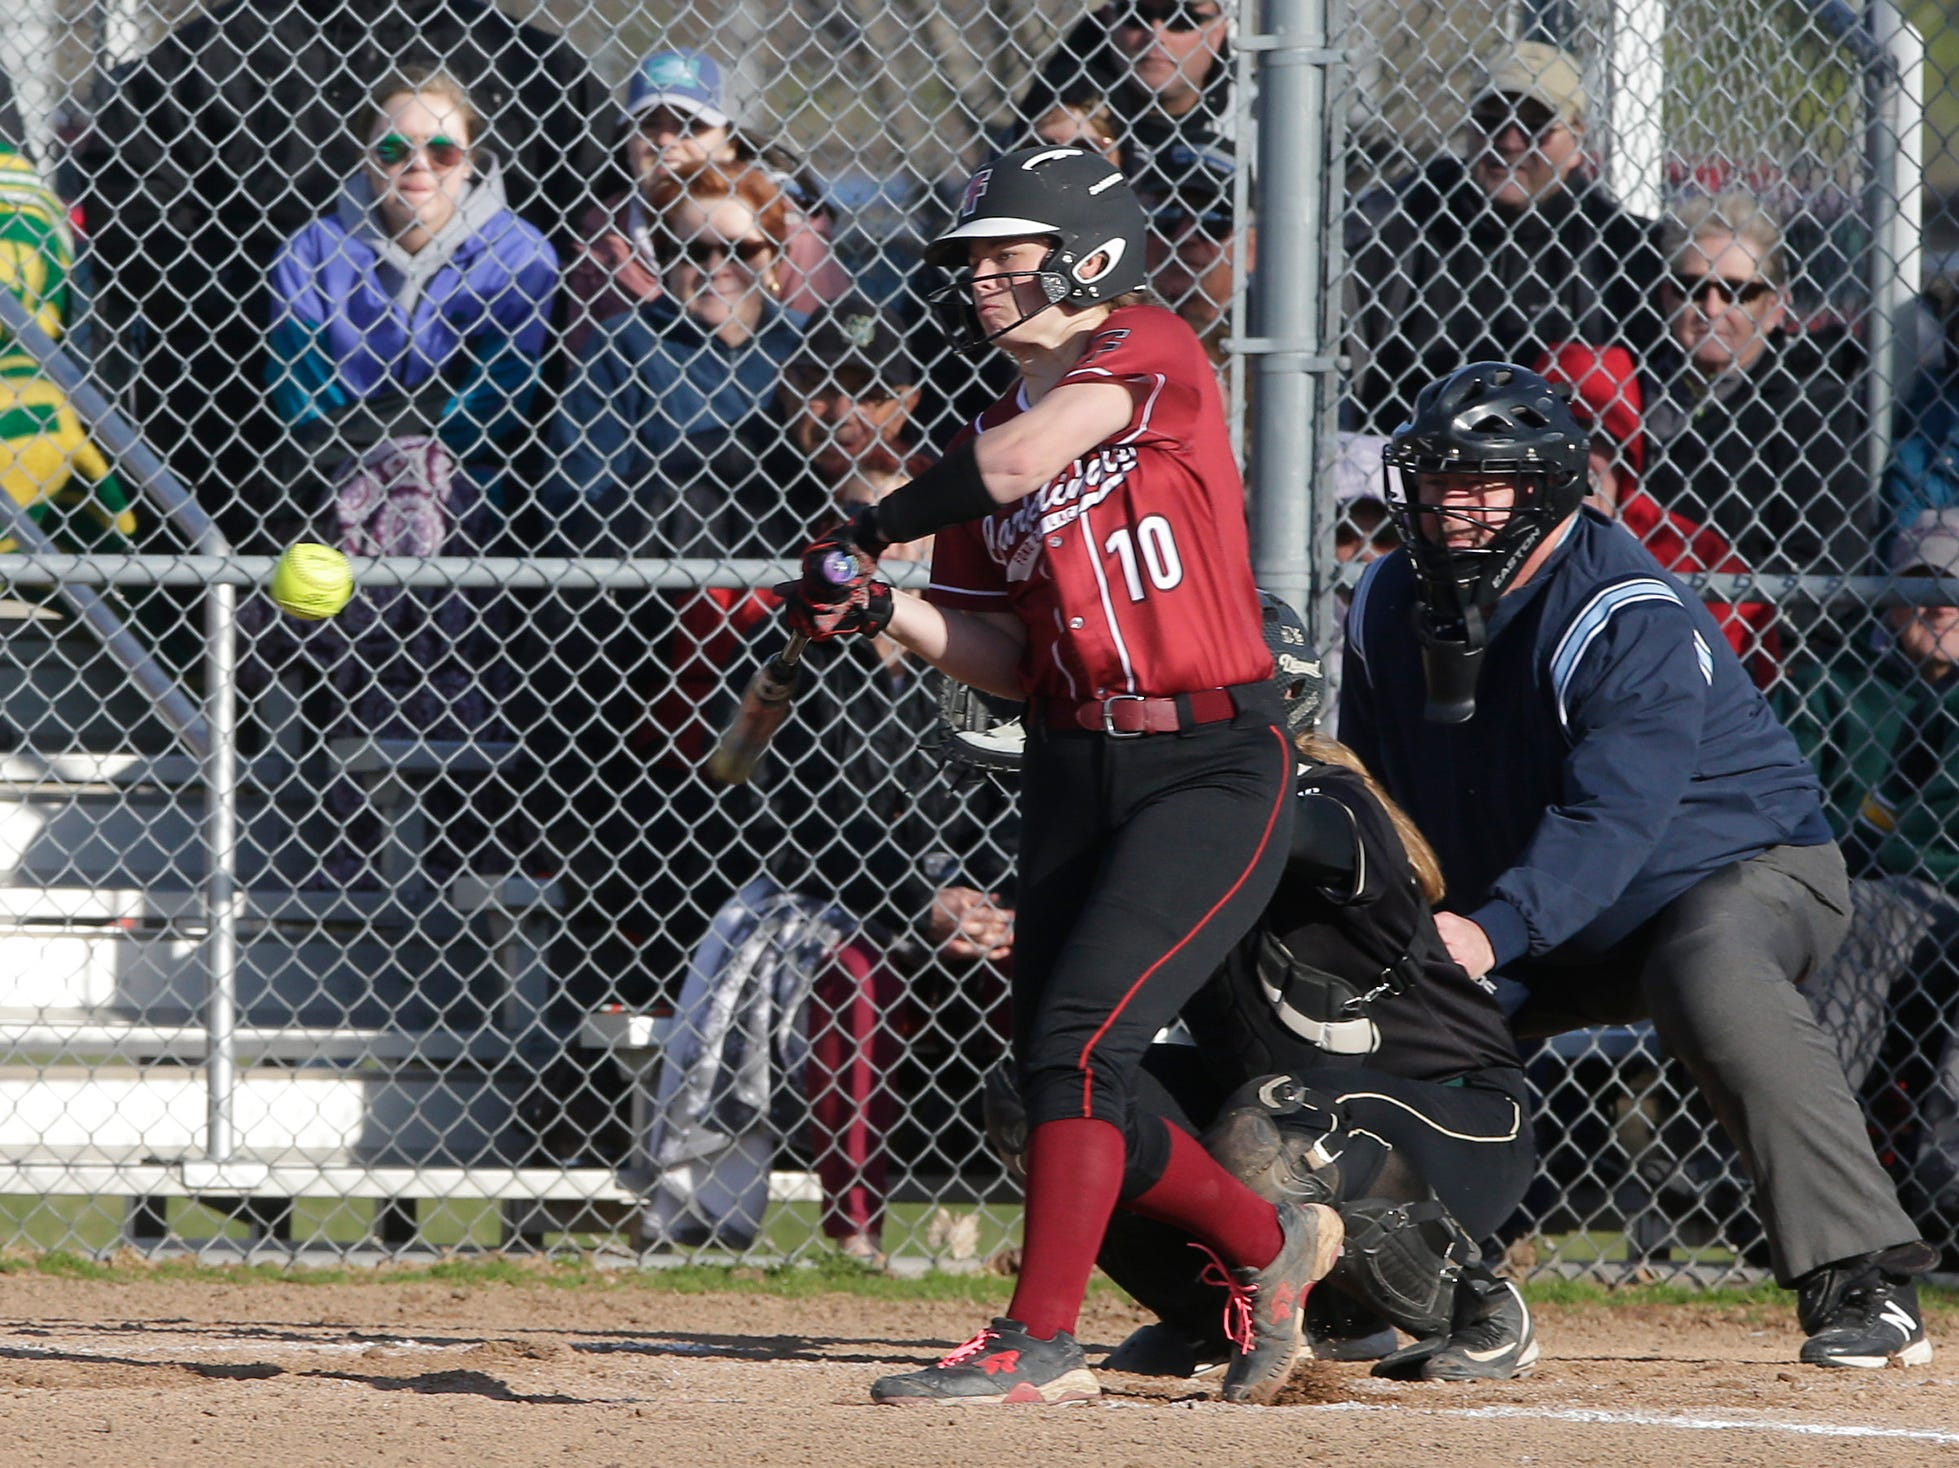 Fond du Lac High School softball's Morgan Flaherty swings at a pitch against Oshkosh North High School during their game Friday, April 26, 2019 in Fond du Lac, Wis. Doug Raflik/USA TODAY NETWORK-Wisconsin